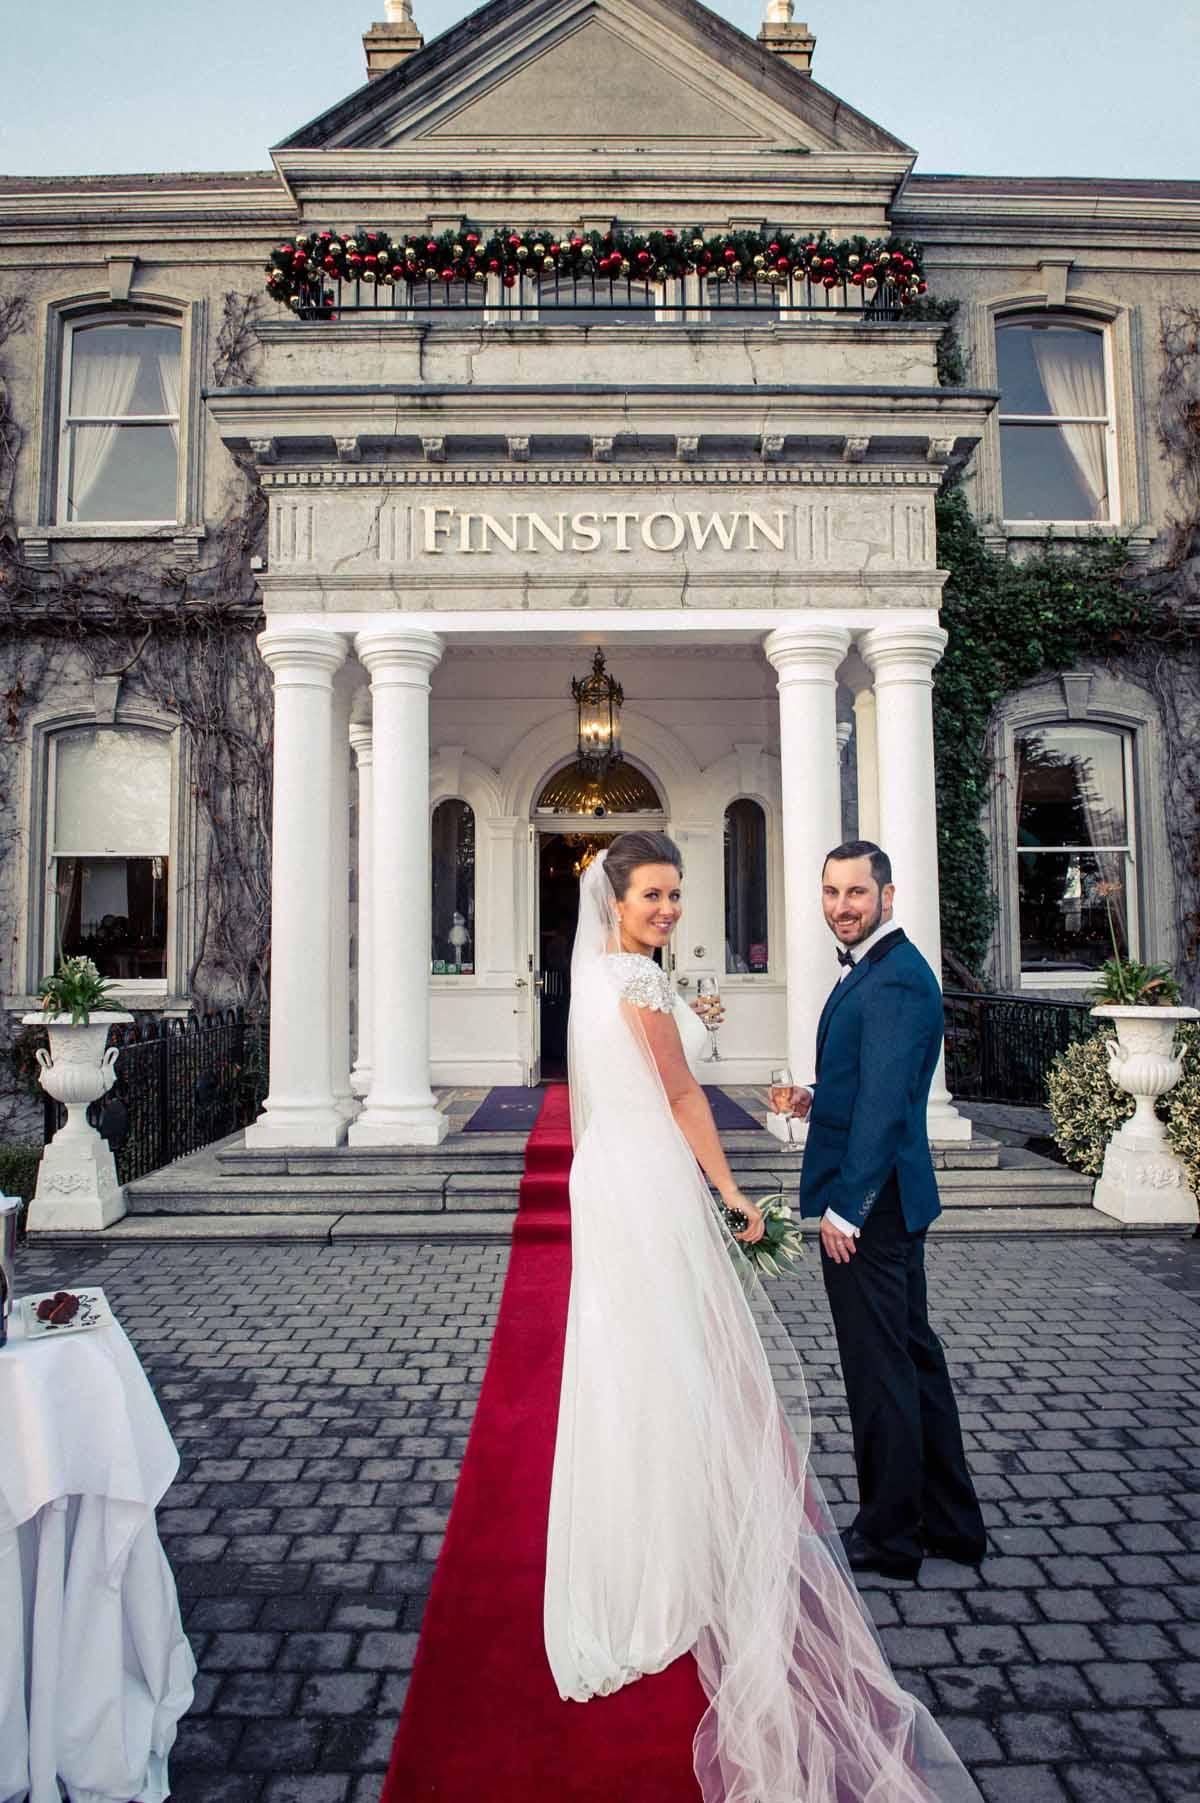 A Finnstown House Wedding Photo